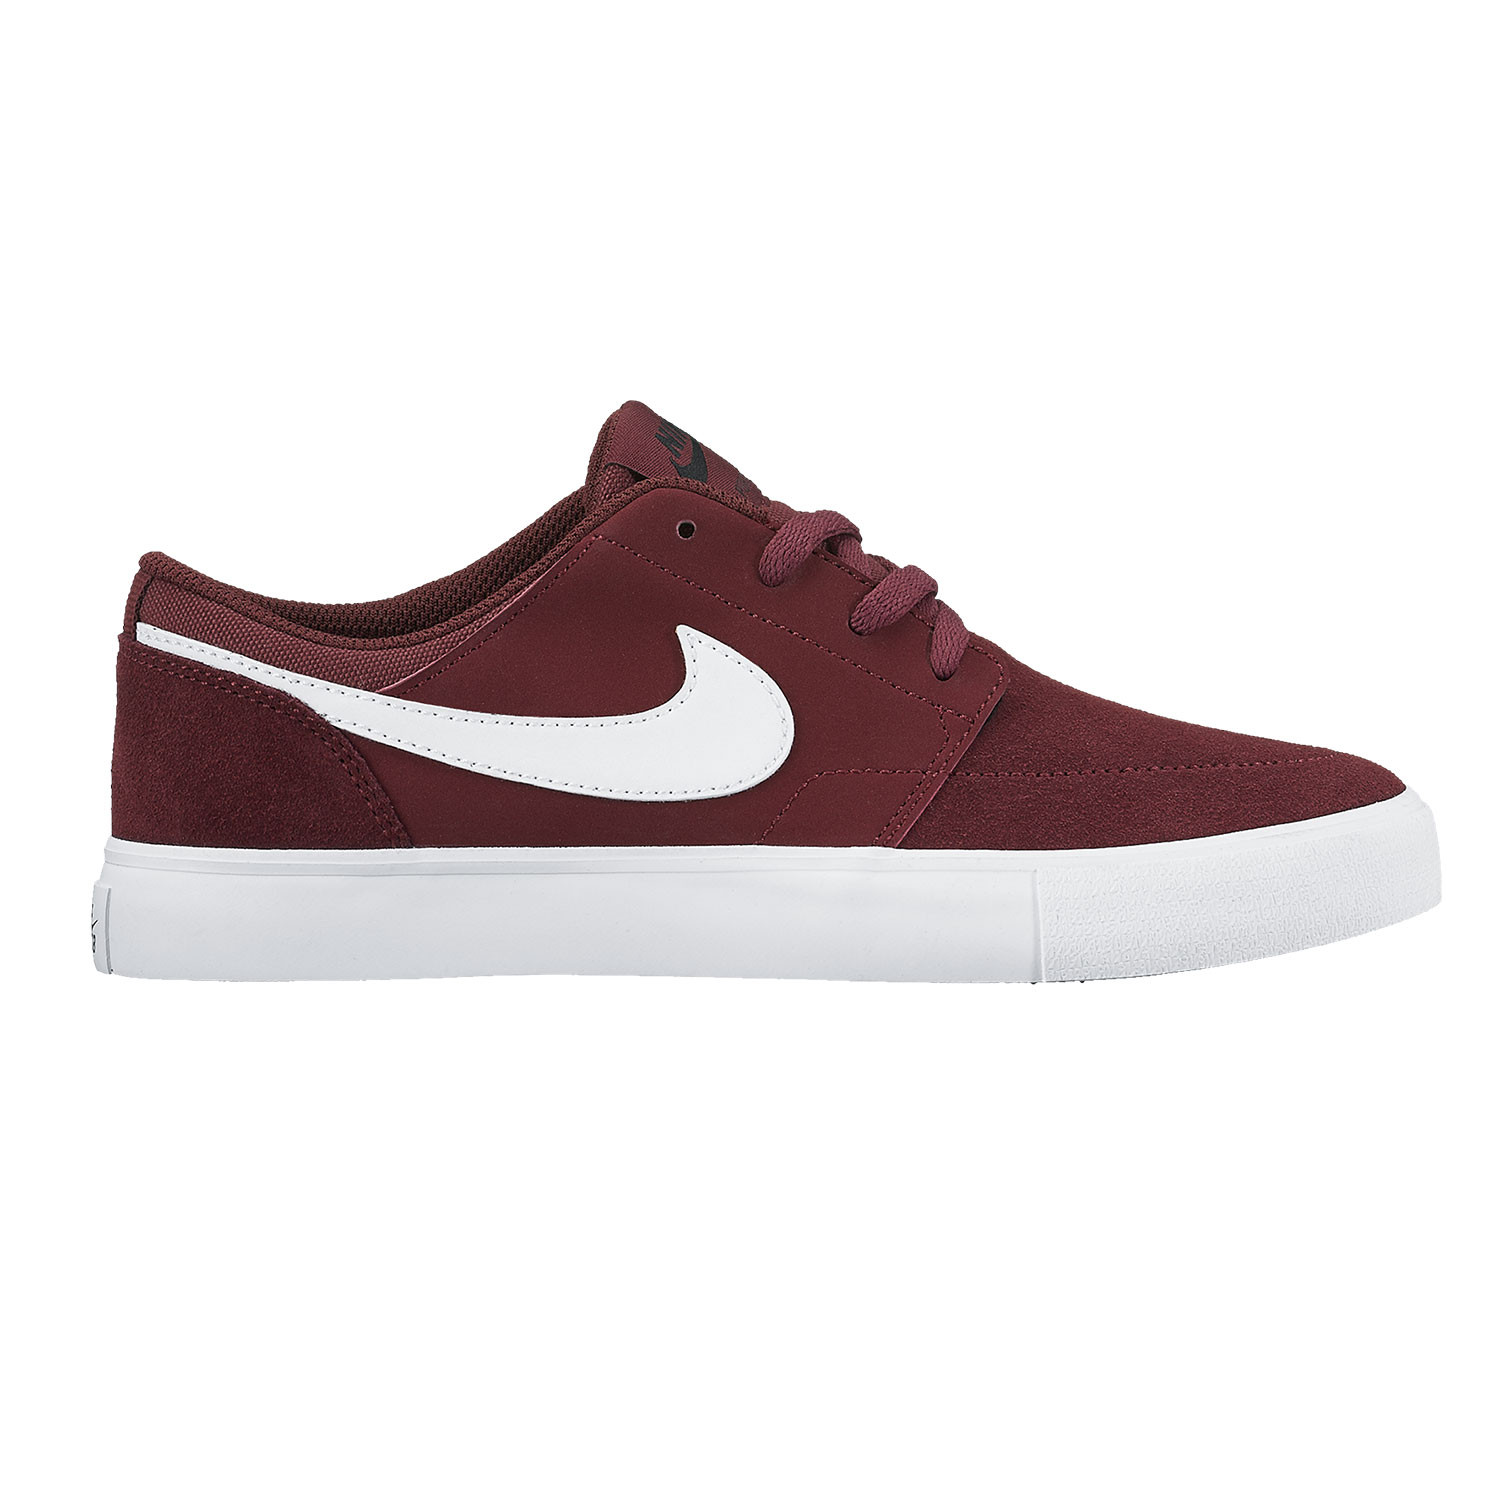 Tenisky Nike SB Portmore Ii Boys dark team red/white-black-white